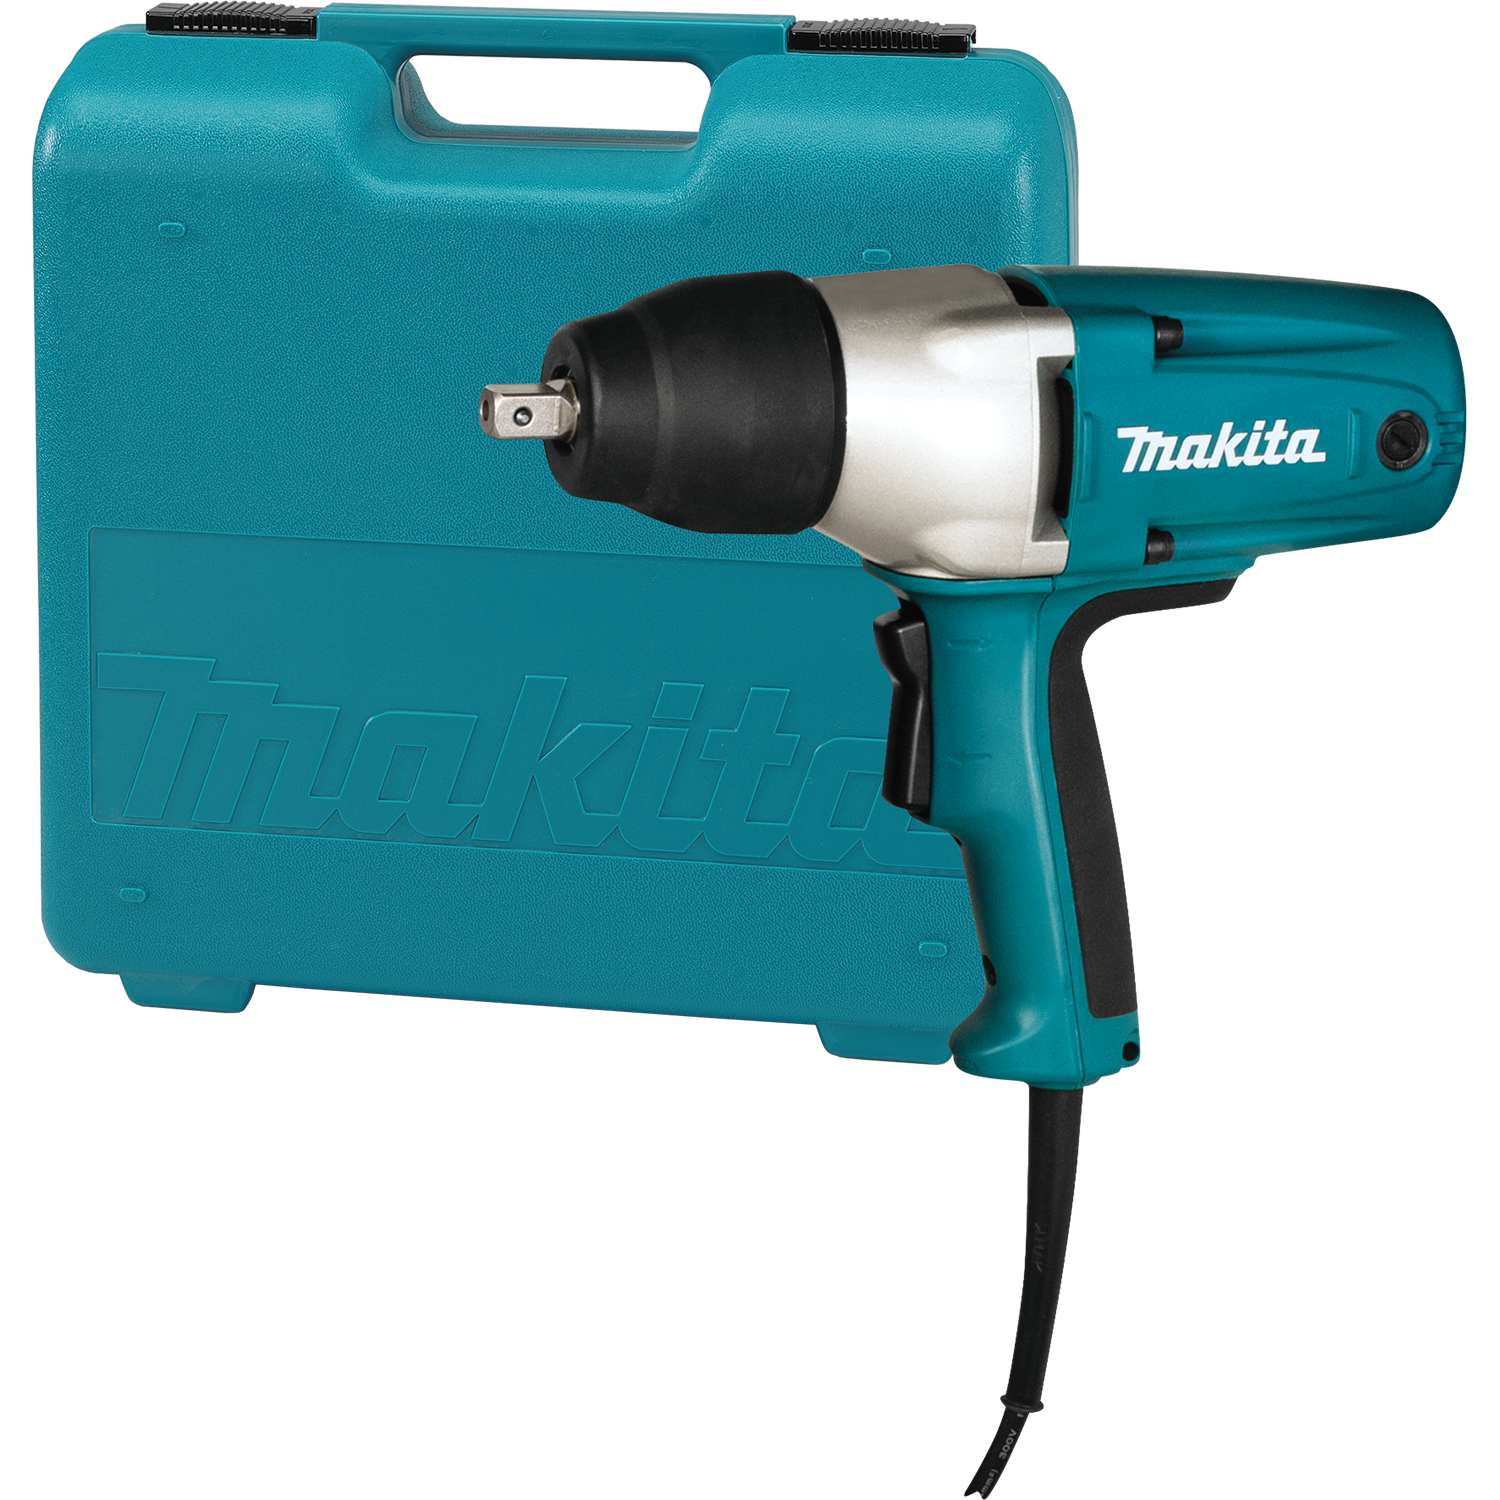 Makita USA - Product Details -TW0350